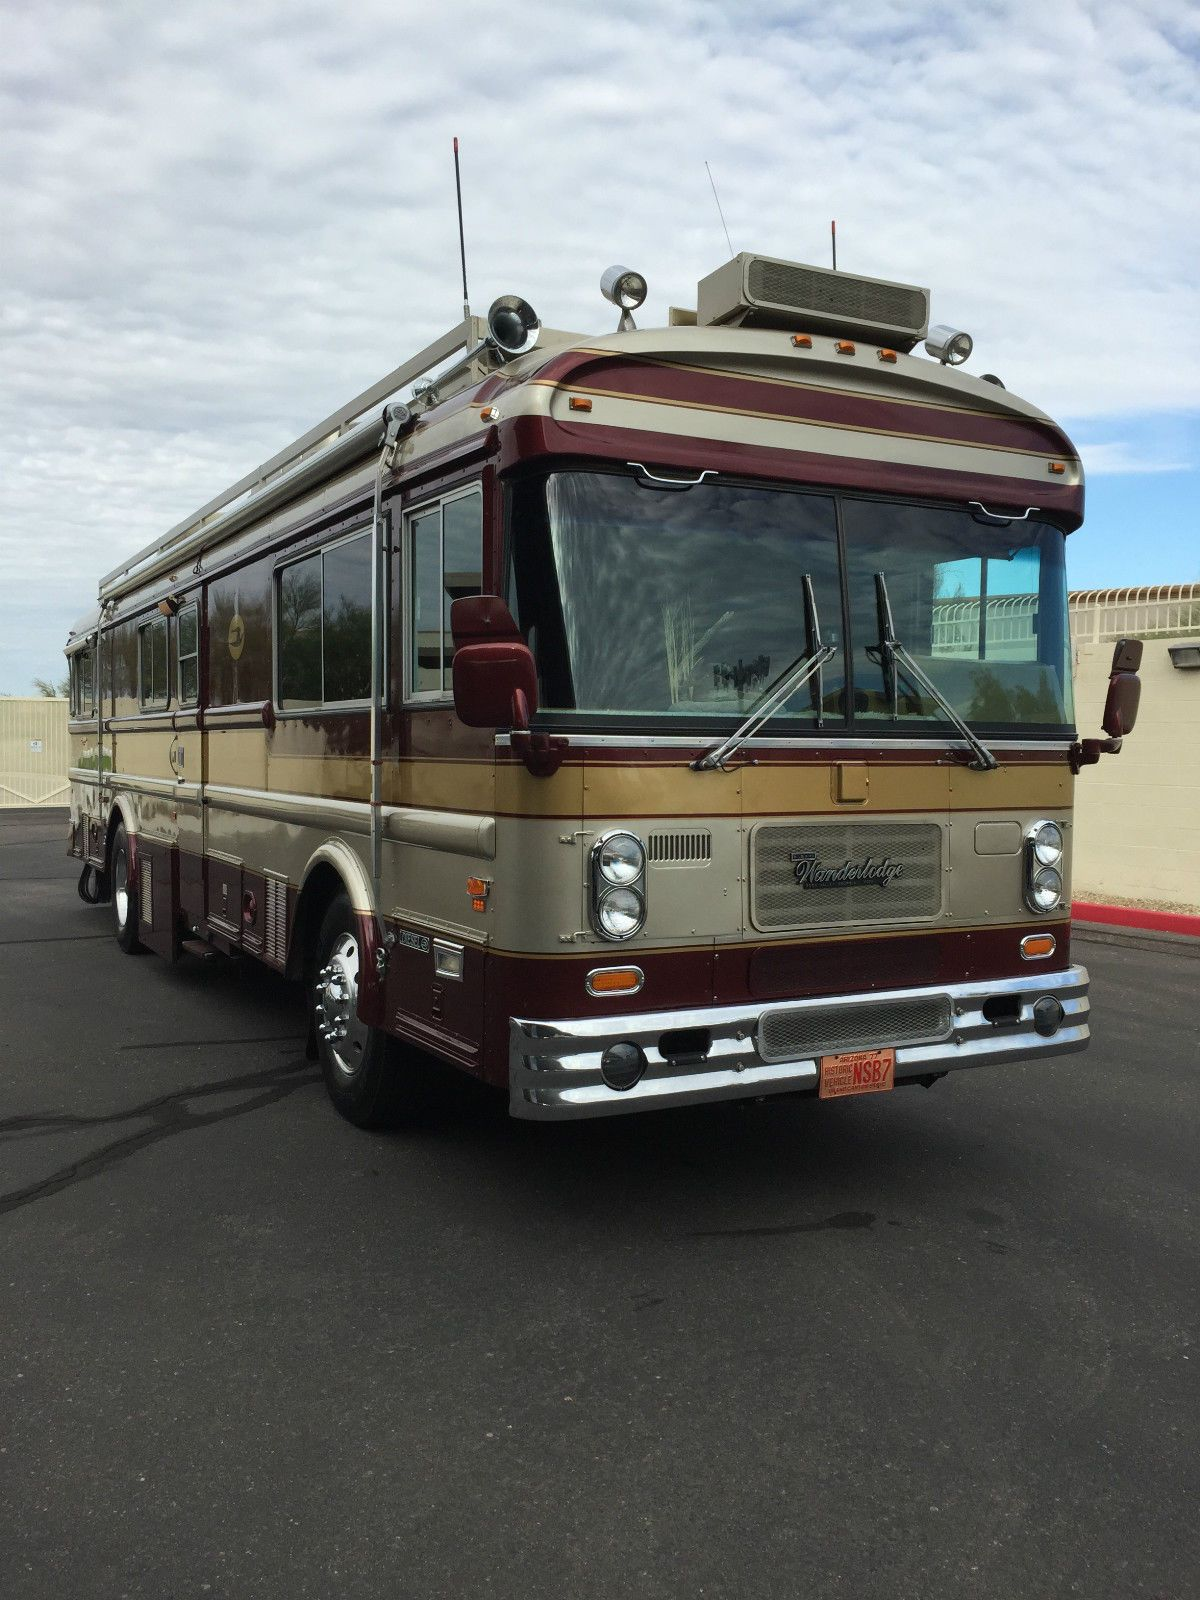 a421ba29847e18825f34cf9ecf8f156c 1982 blue bird wanderlodge motorcoach motorhome rv luxury 35  at crackthecode.co